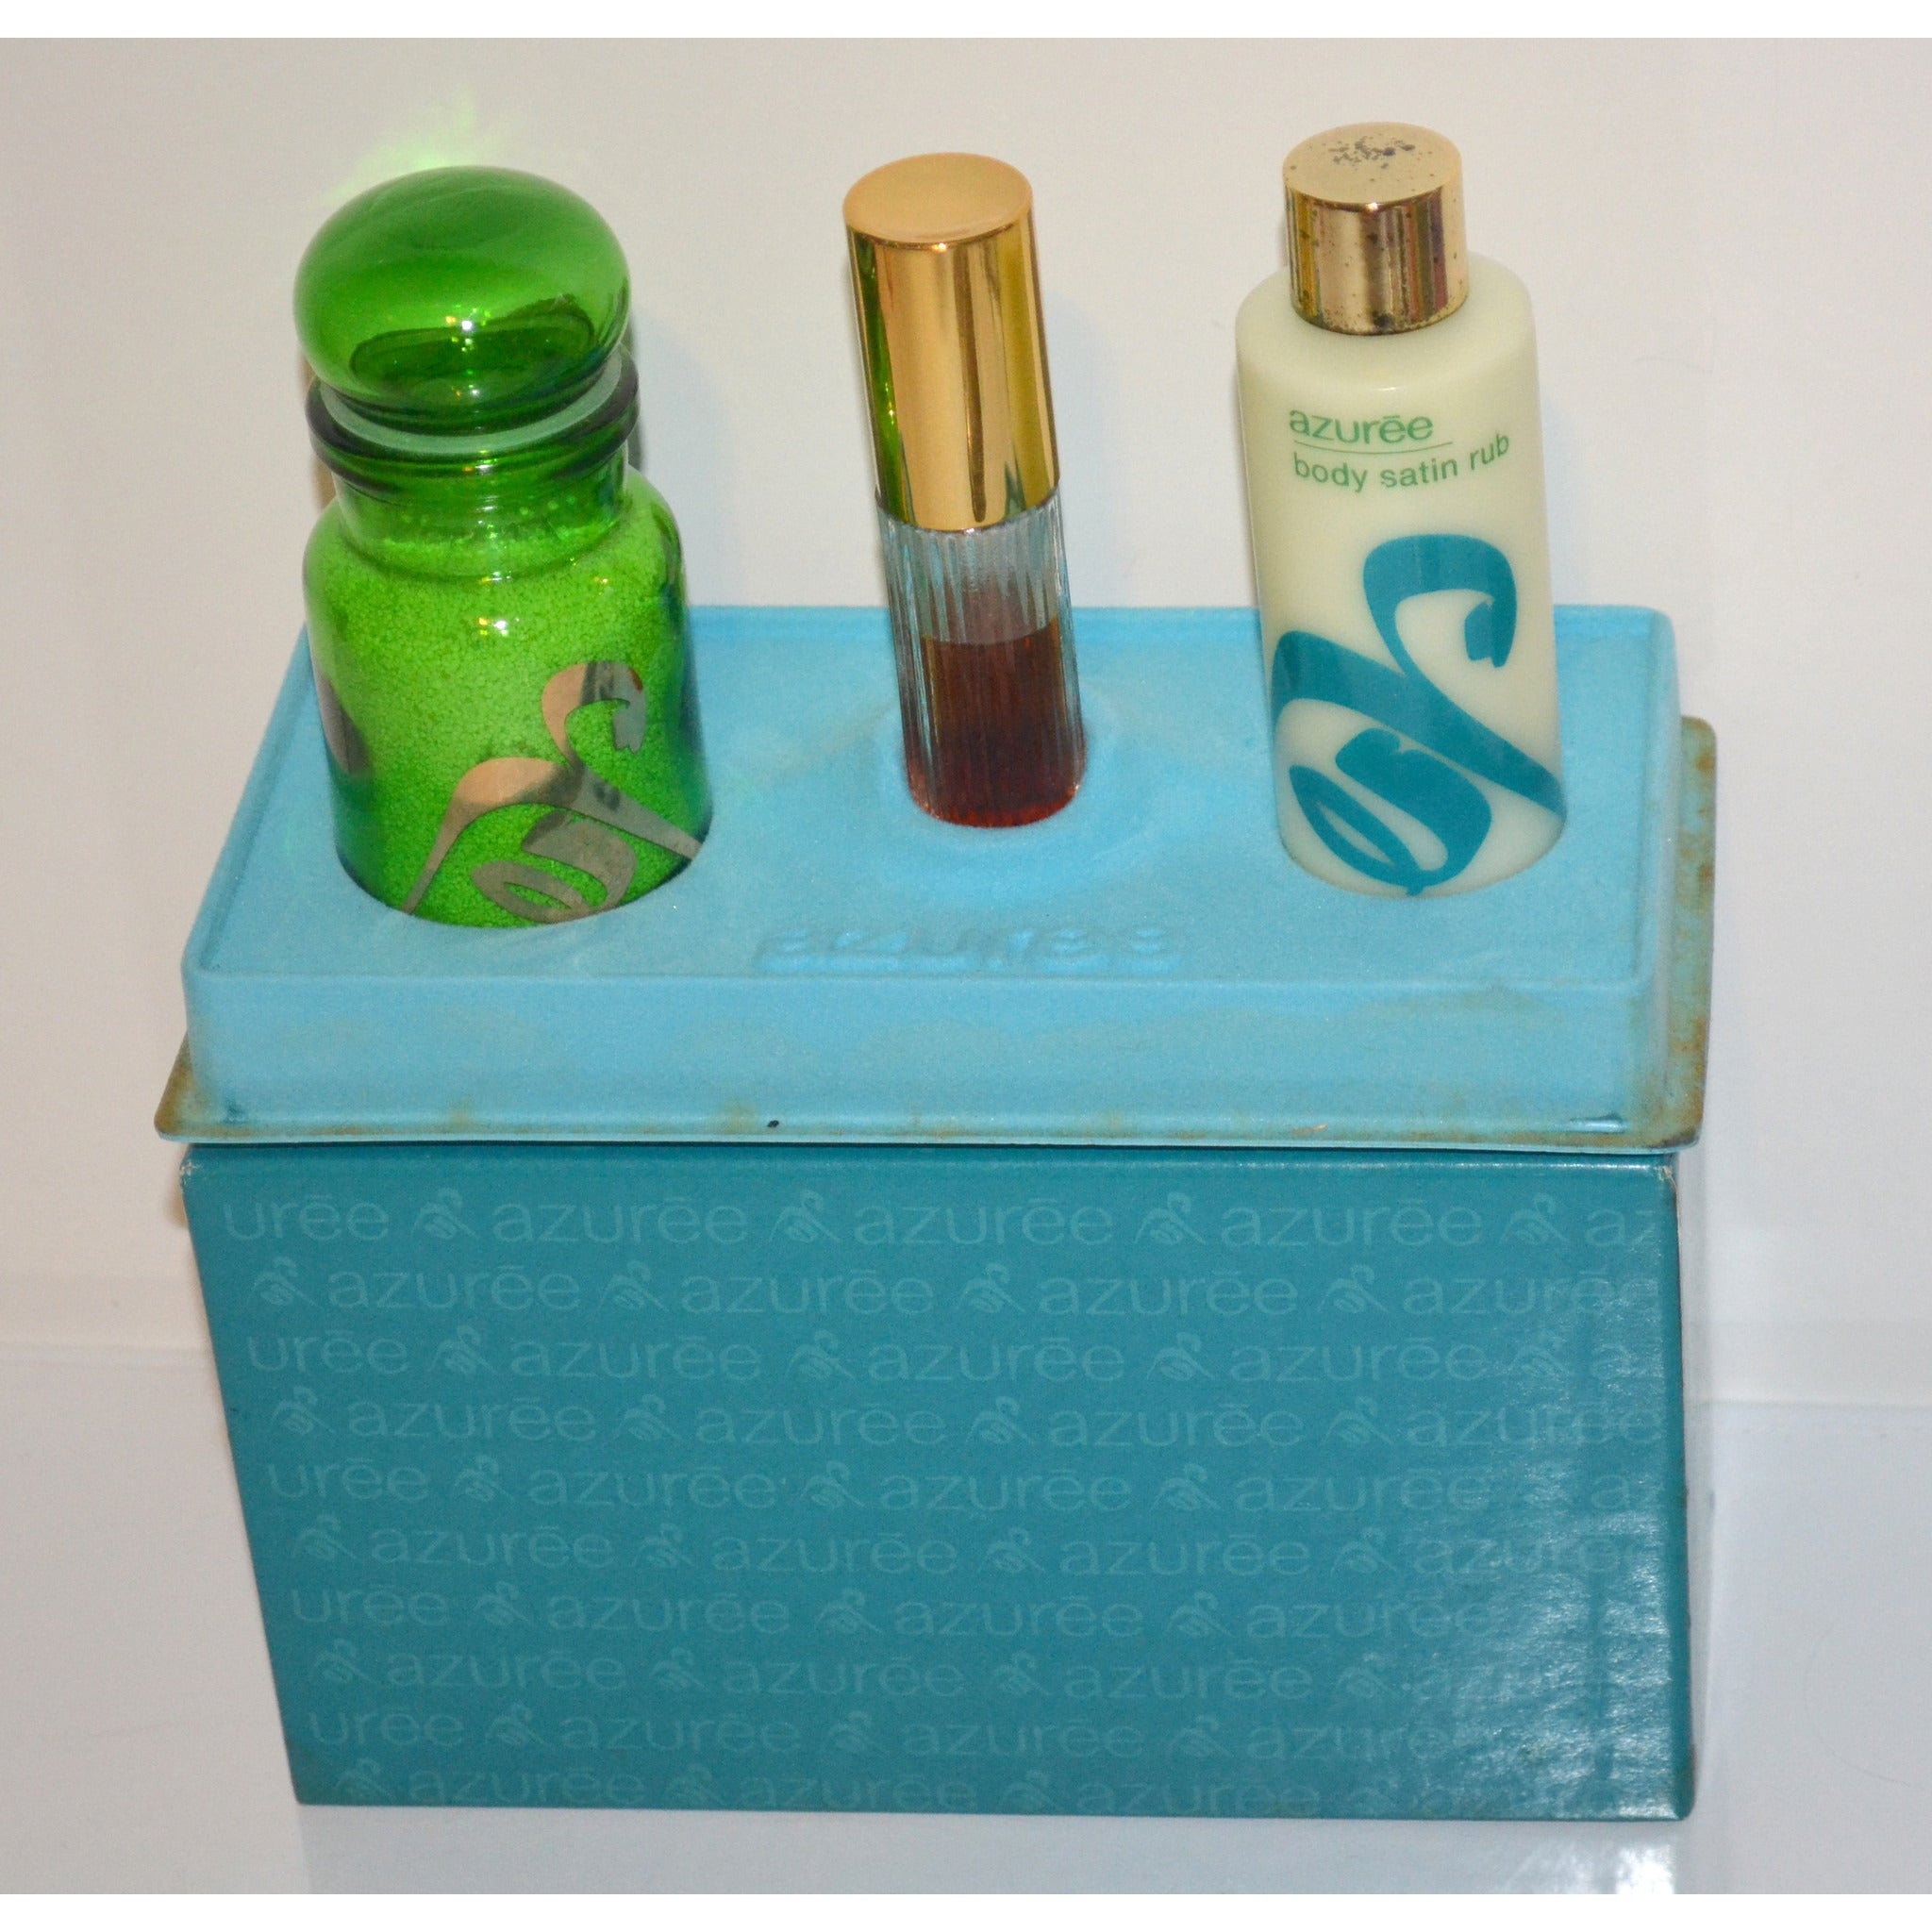 Vintage Azuree Gift Set By Estee Lauder